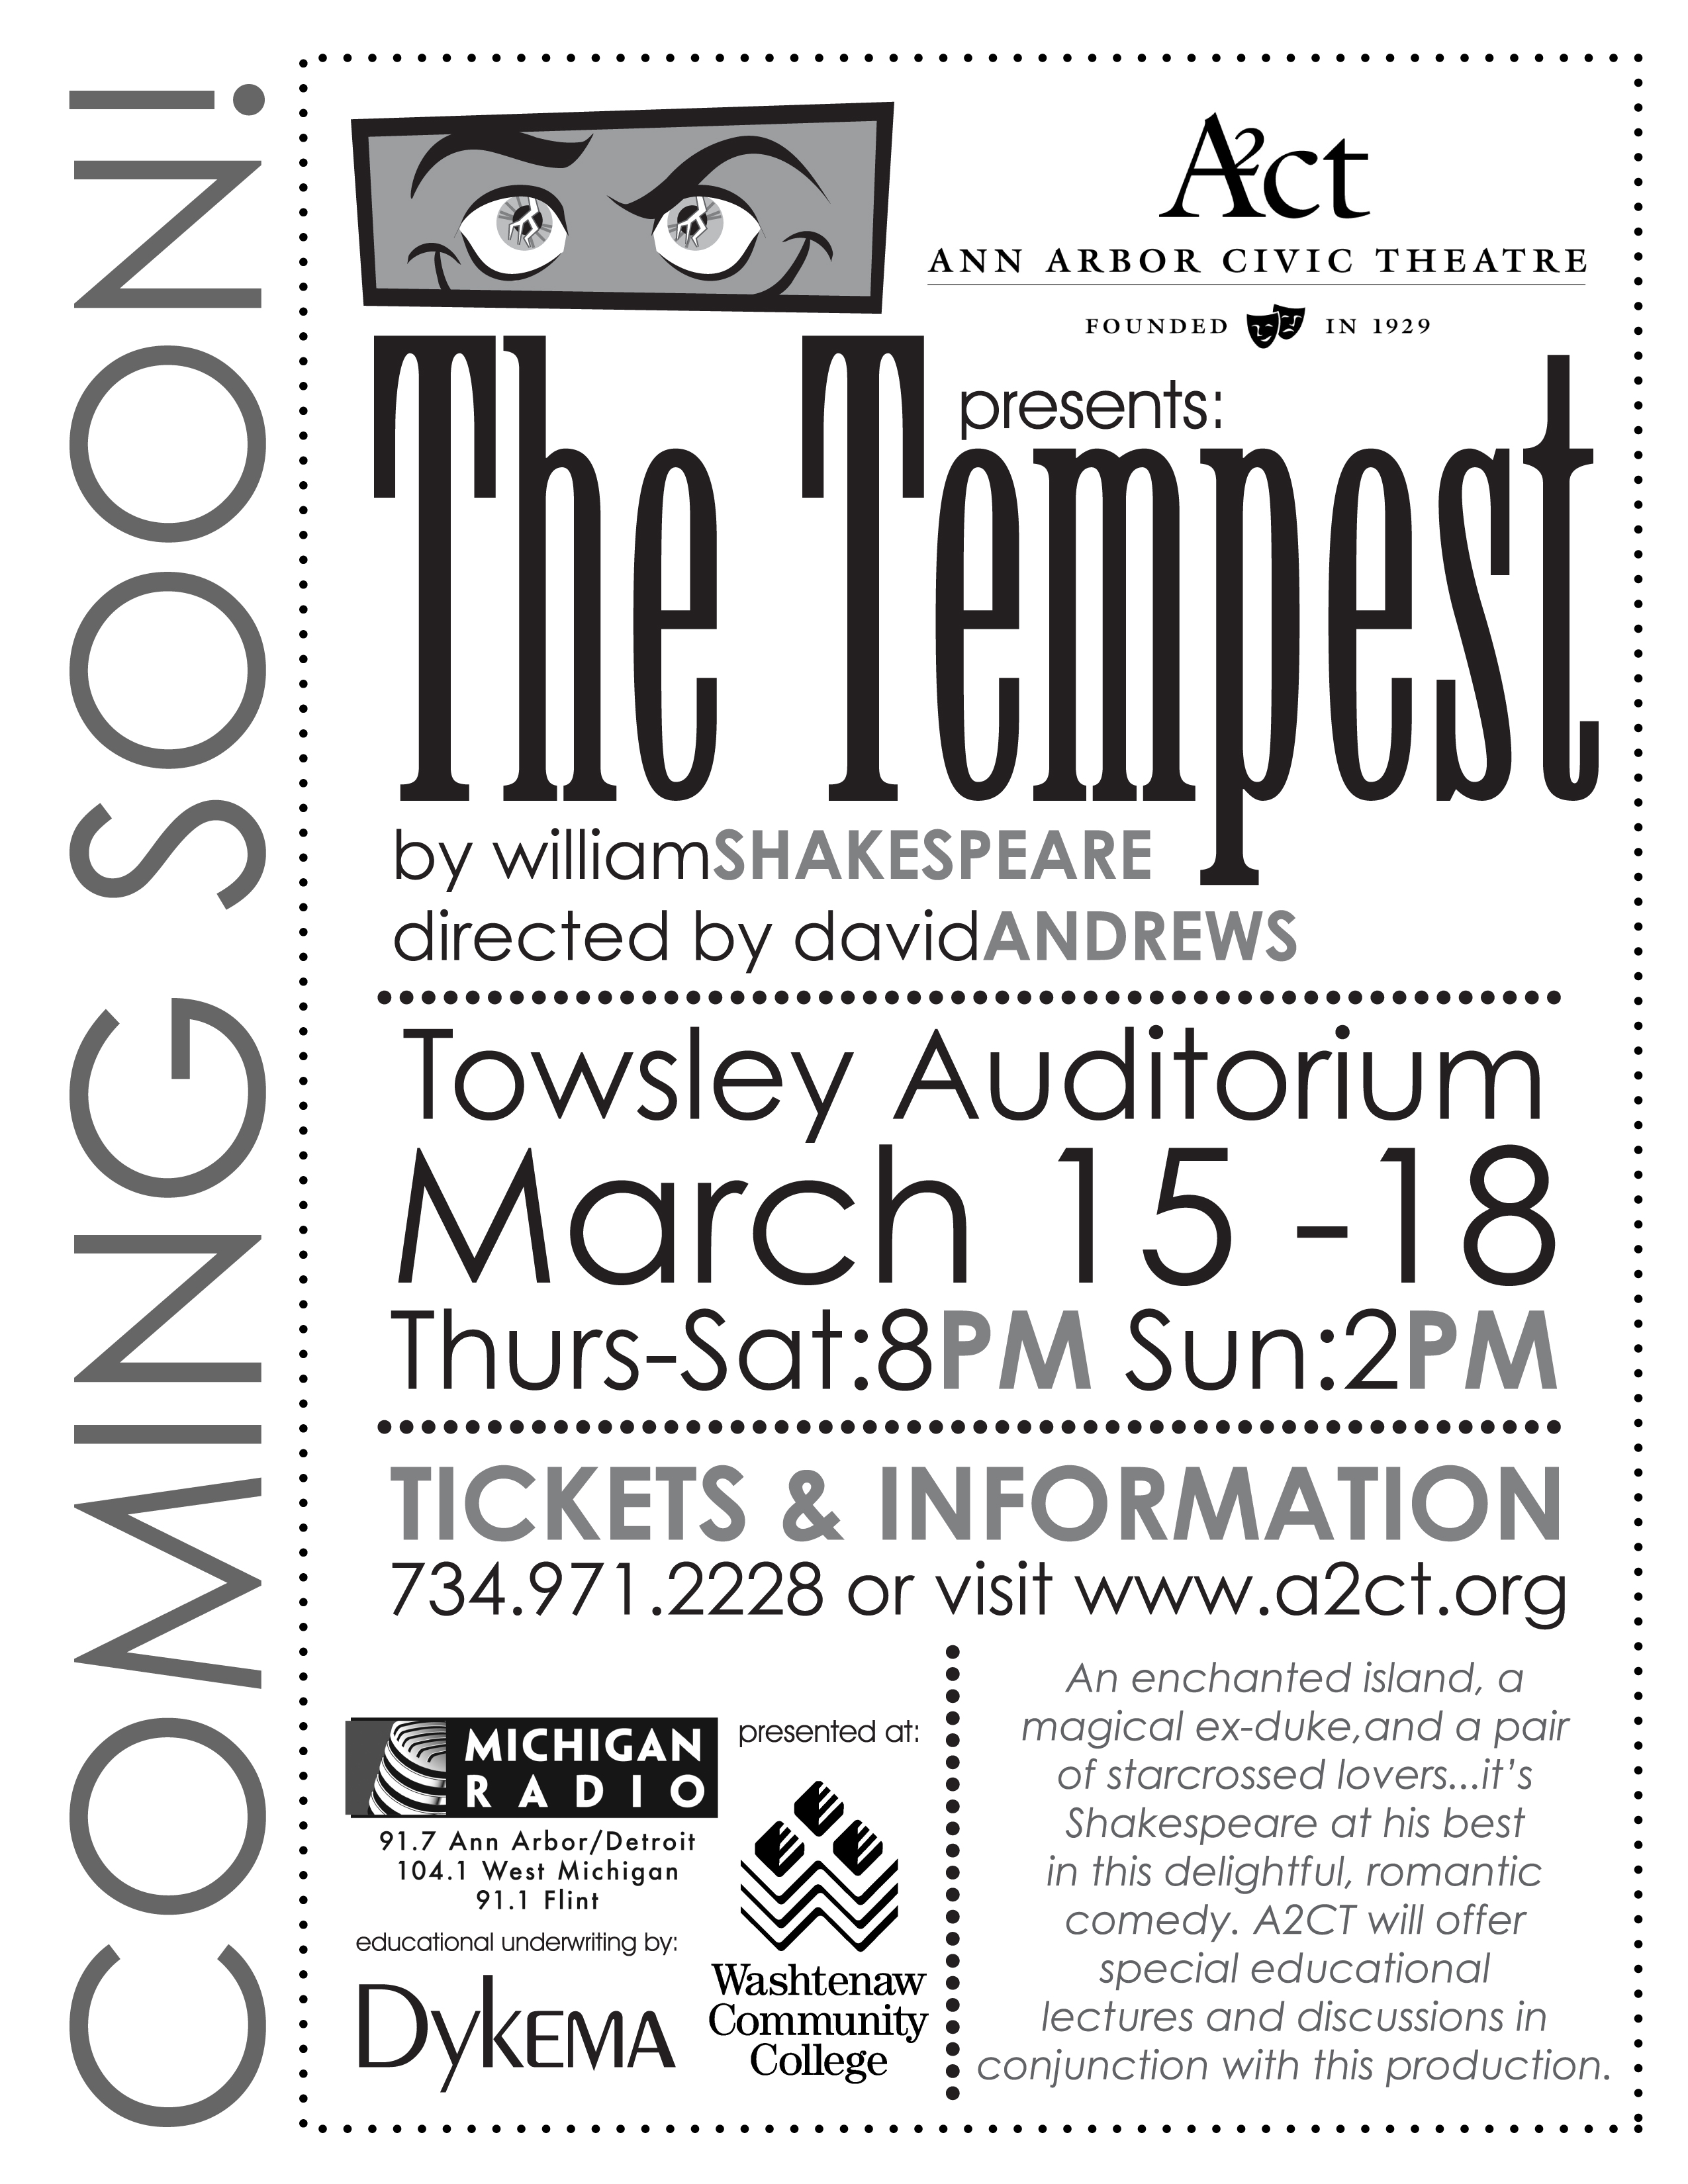 Ann Arbor Civic Theatre Poster: The Tempest image